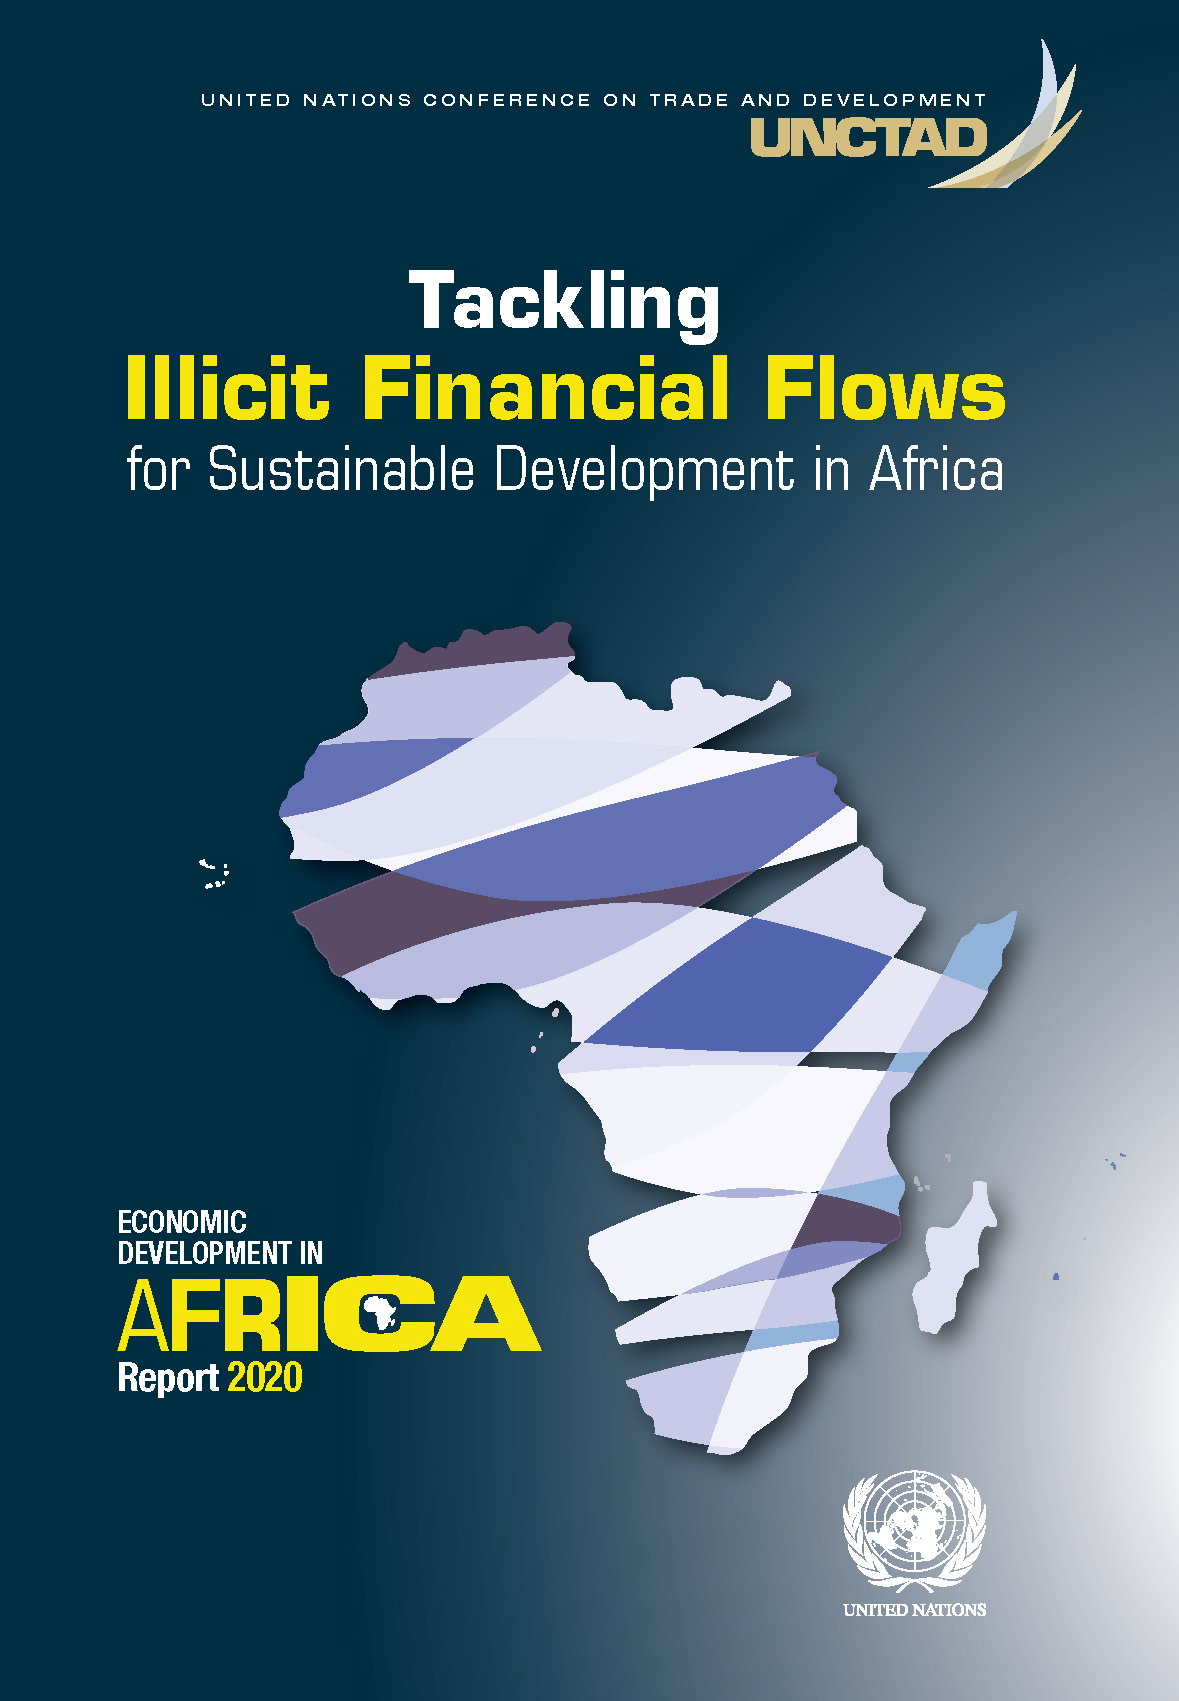 ECONOMIC DEV IN AFRICA RPT 2020